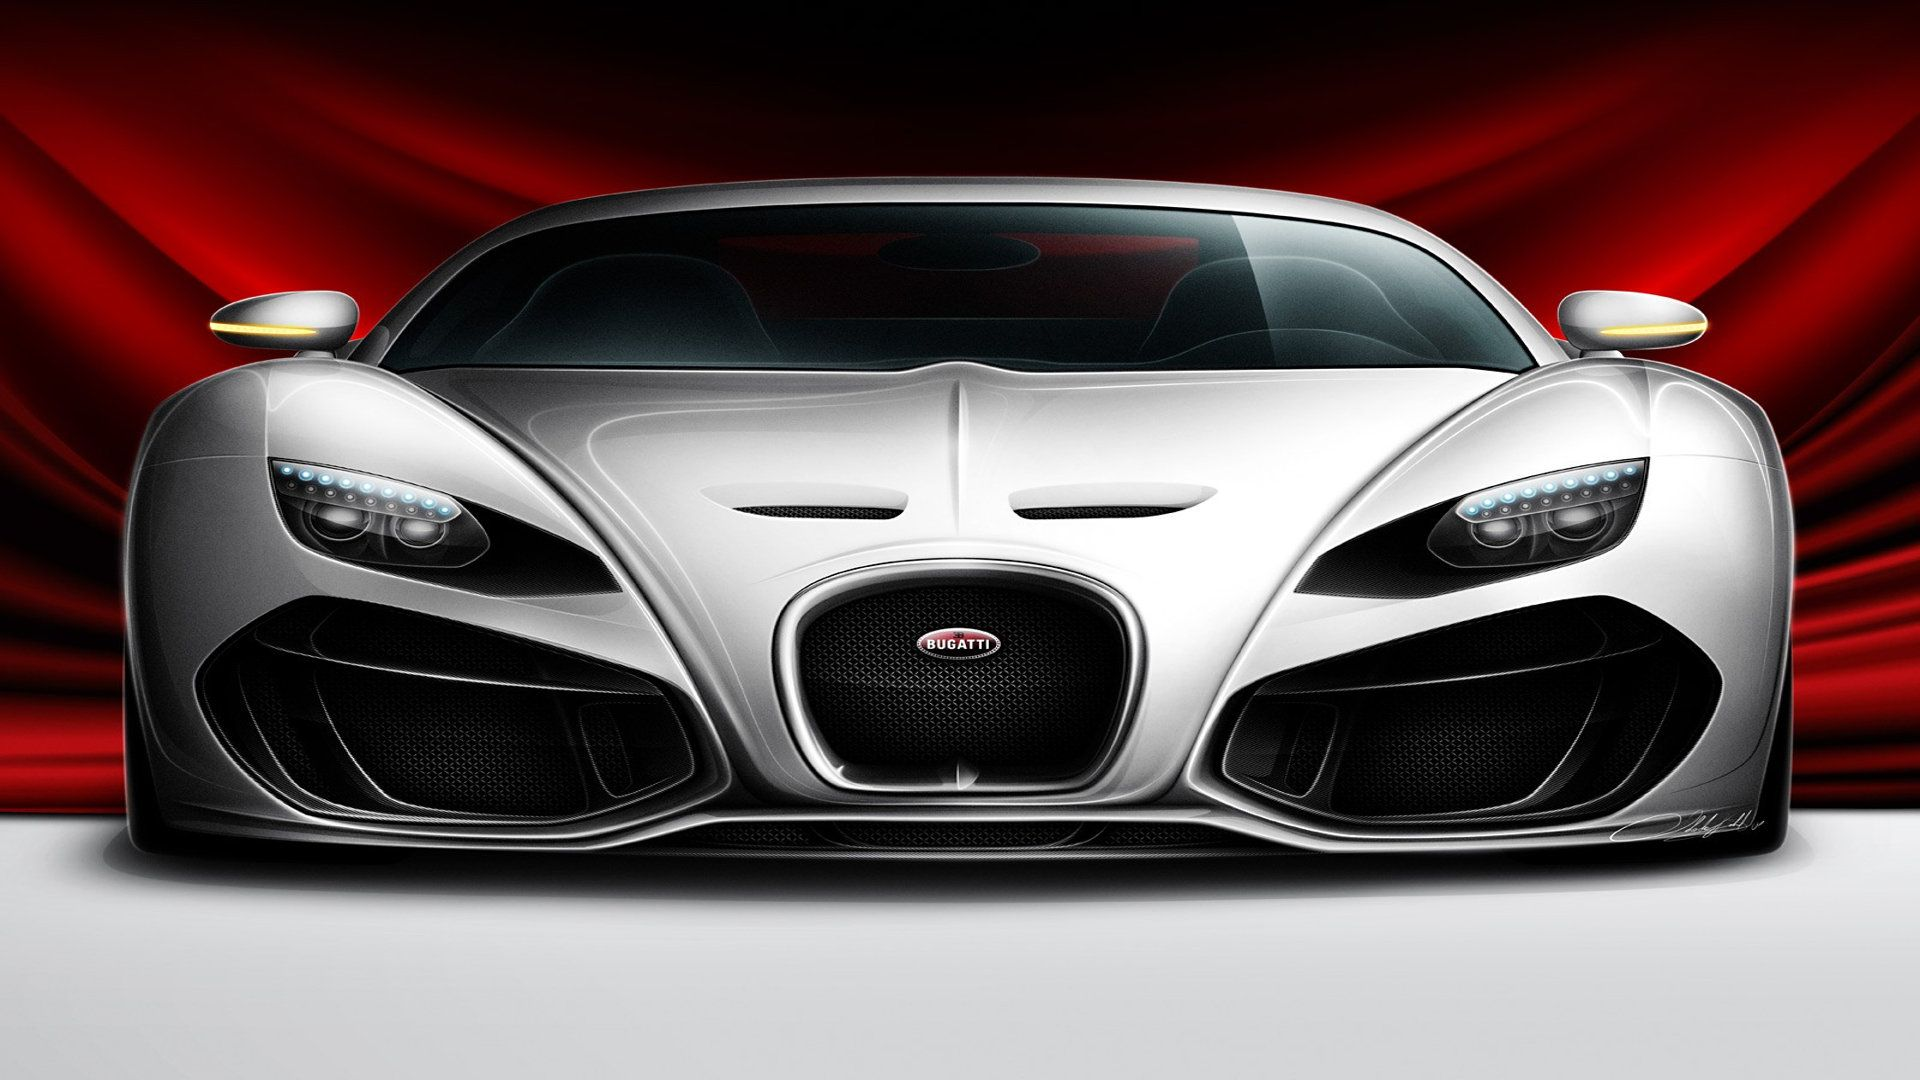 Future flying cars 2020 Bugatti veyron super sport